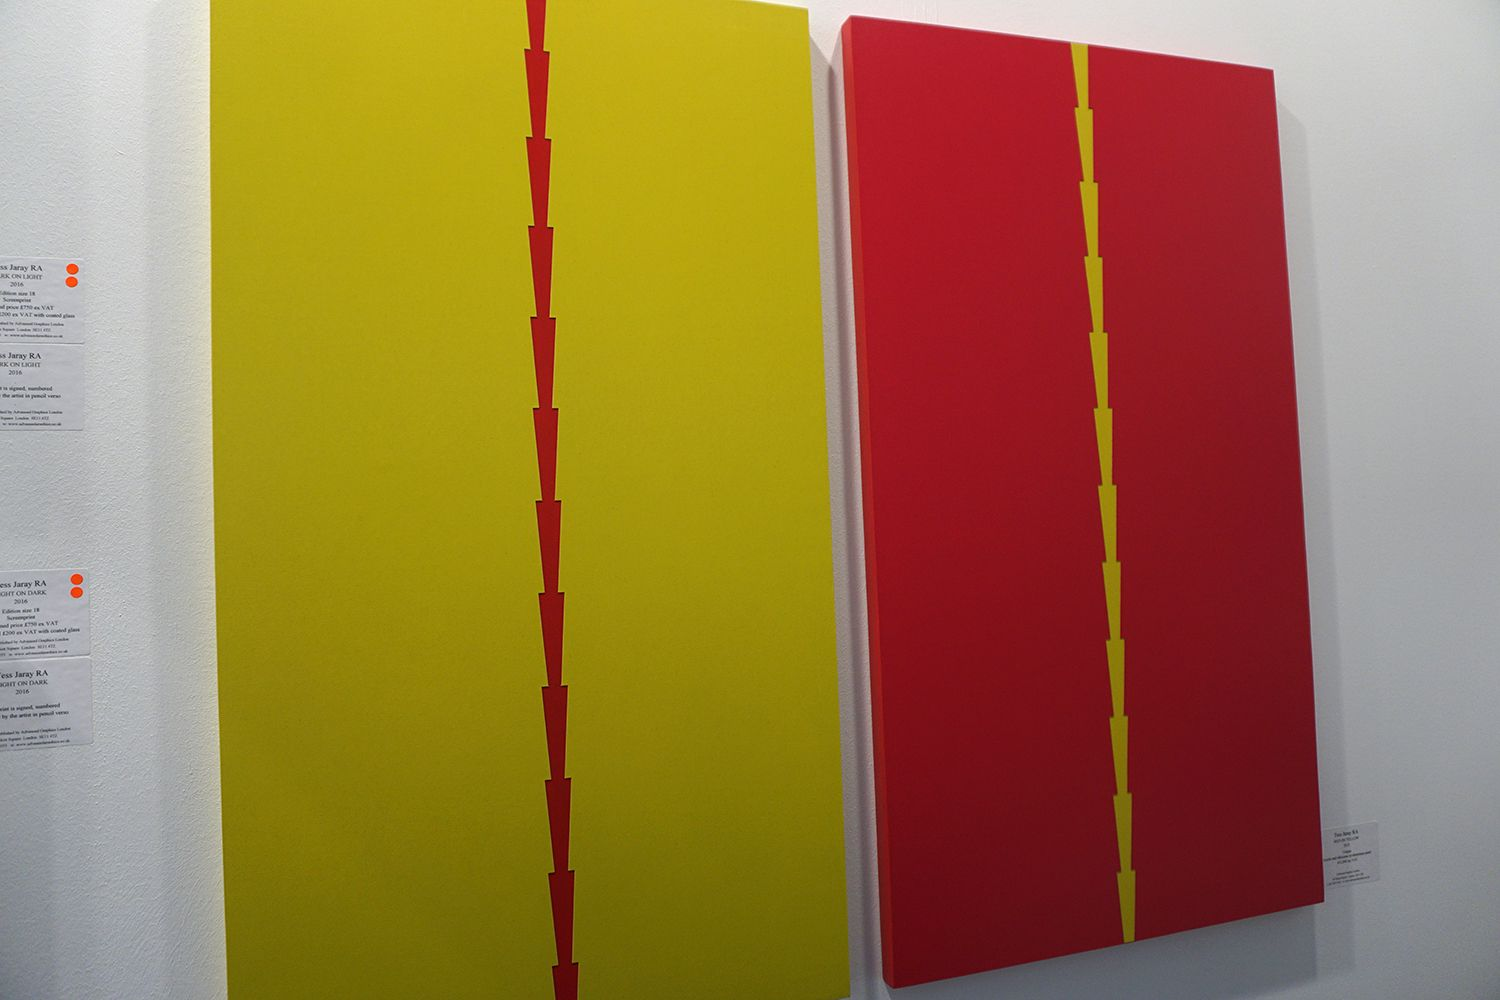 """Red on Yellow""  Tess Jaray at Advanced Graphics Gallery #LondonArtFair2016 #LAF2016 #London #ArtFair #ContemporaryArt #ArteContemporáneo #ContemporaryArt #Arterecord  2016 https://twitter.com/arterecord"